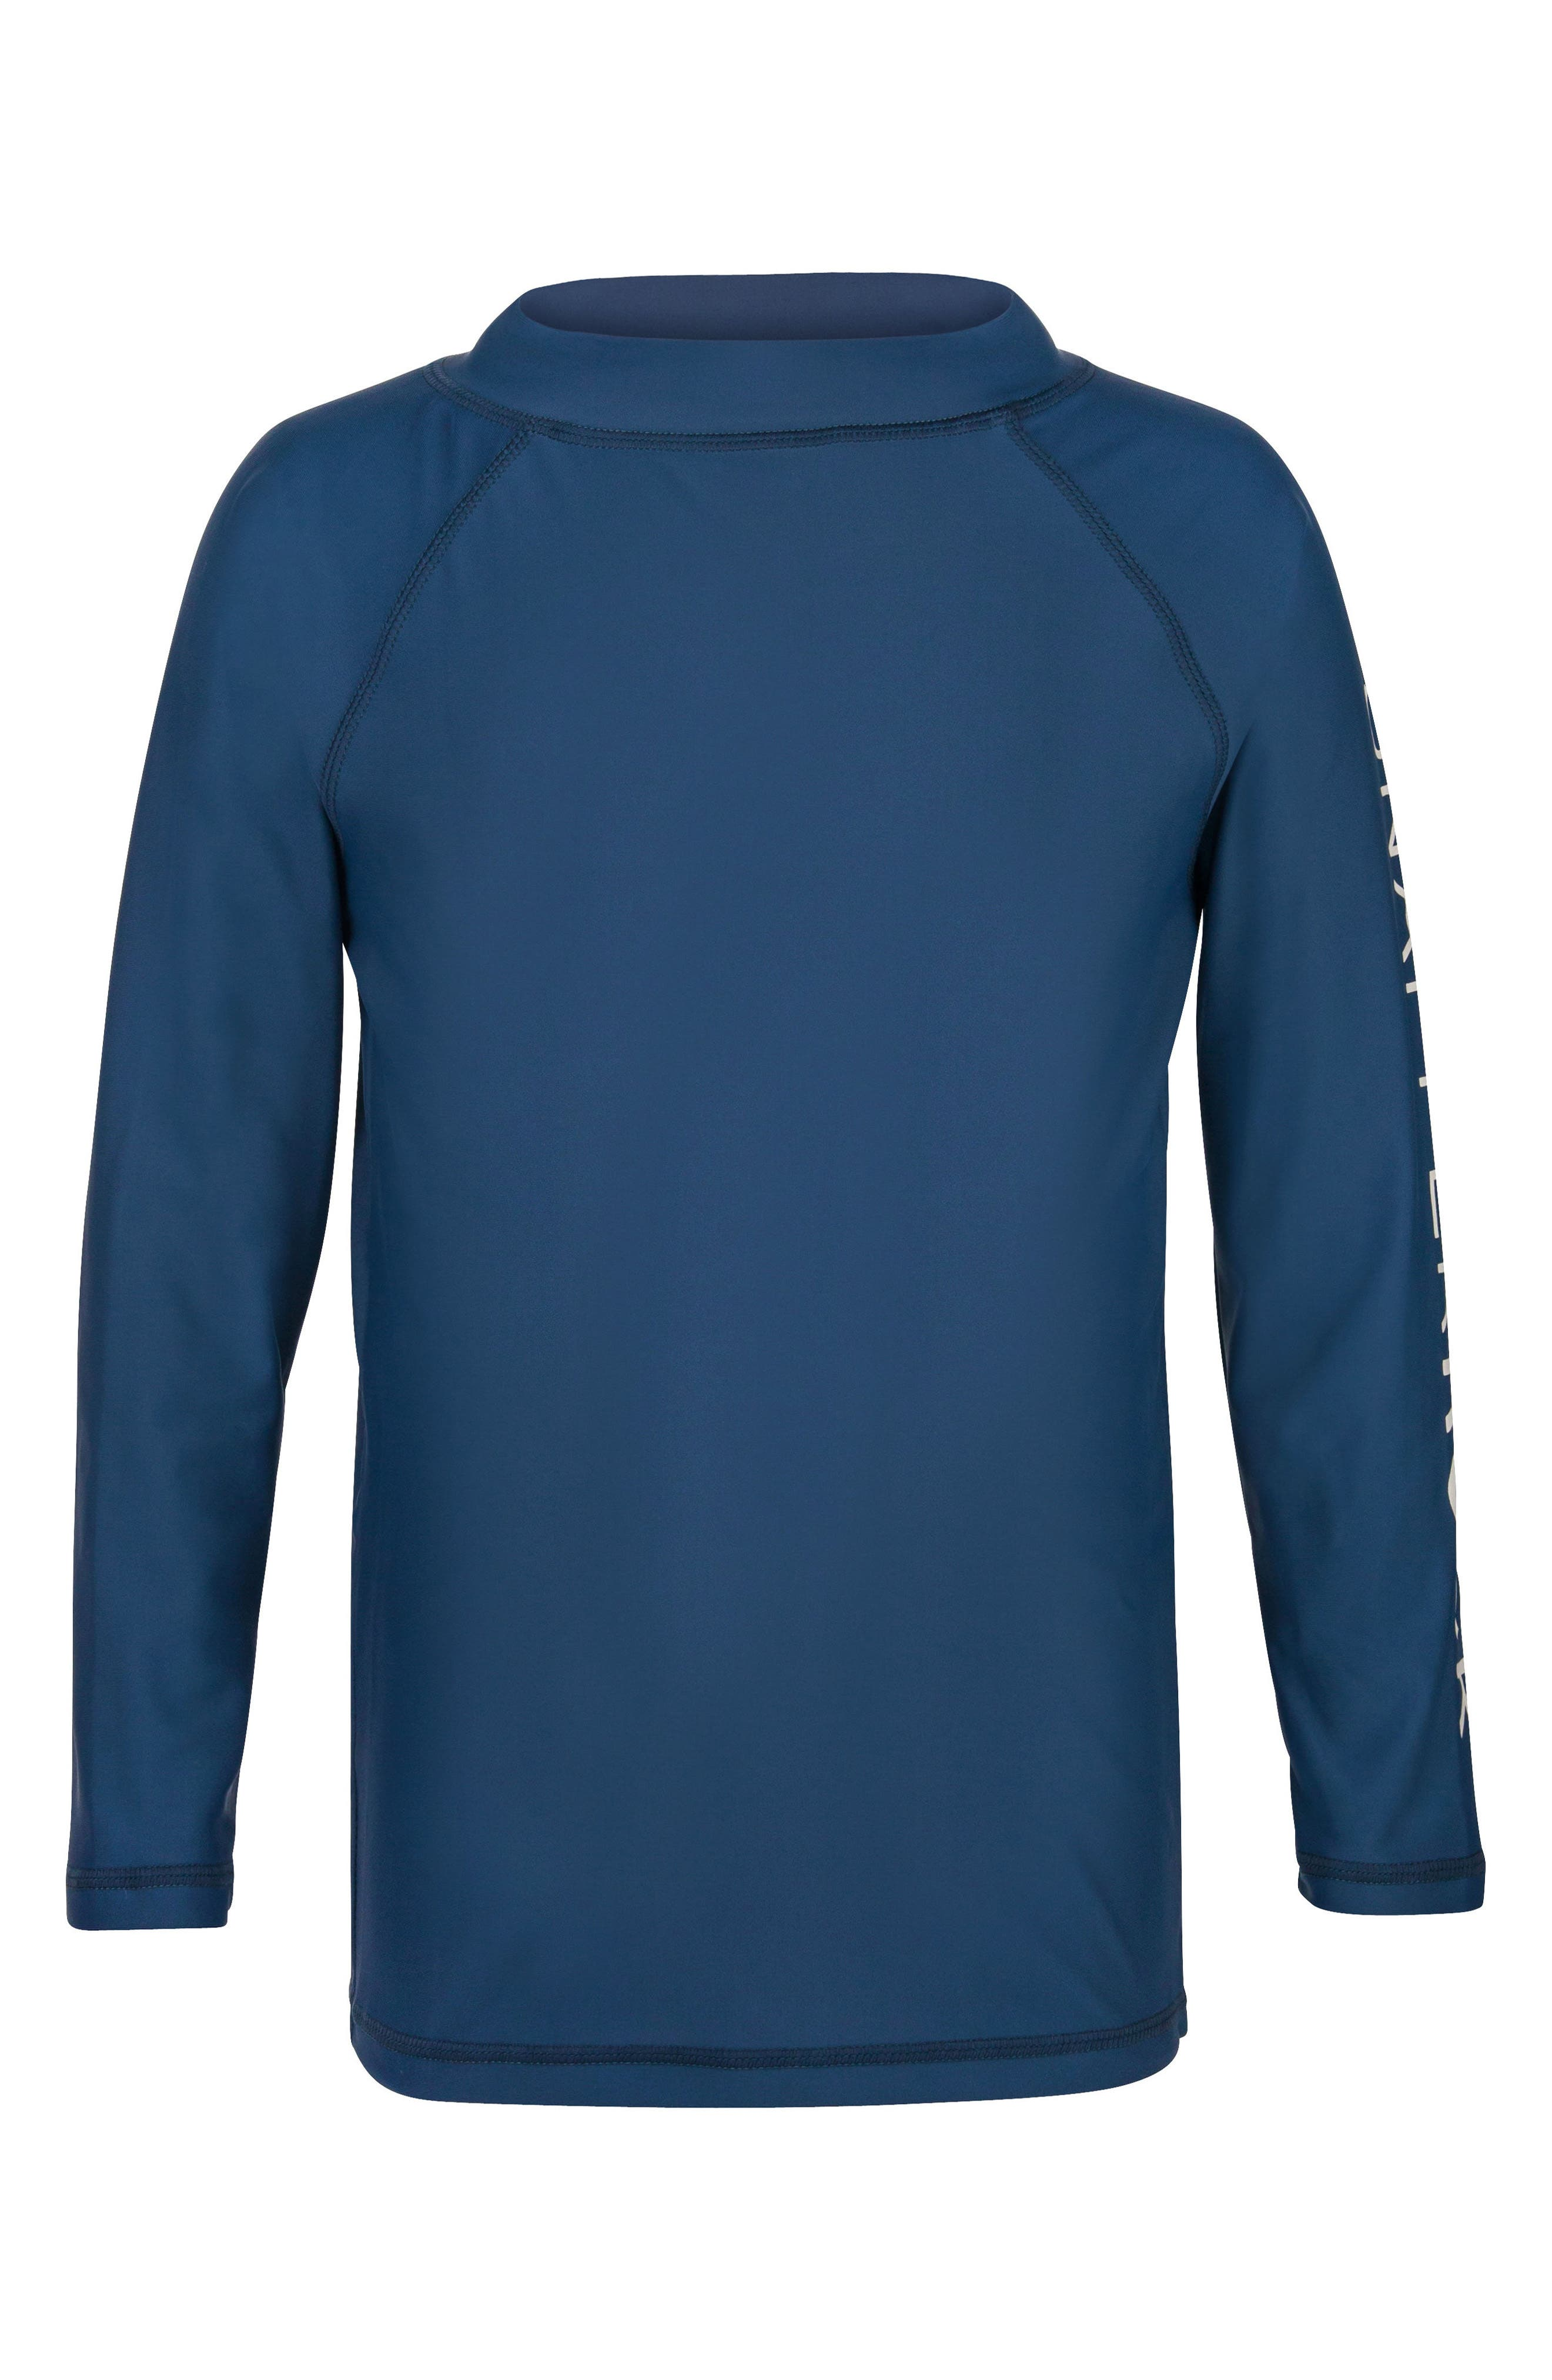 Raglan Long Sleeve Rashguard,                         Main,                         color, Denim